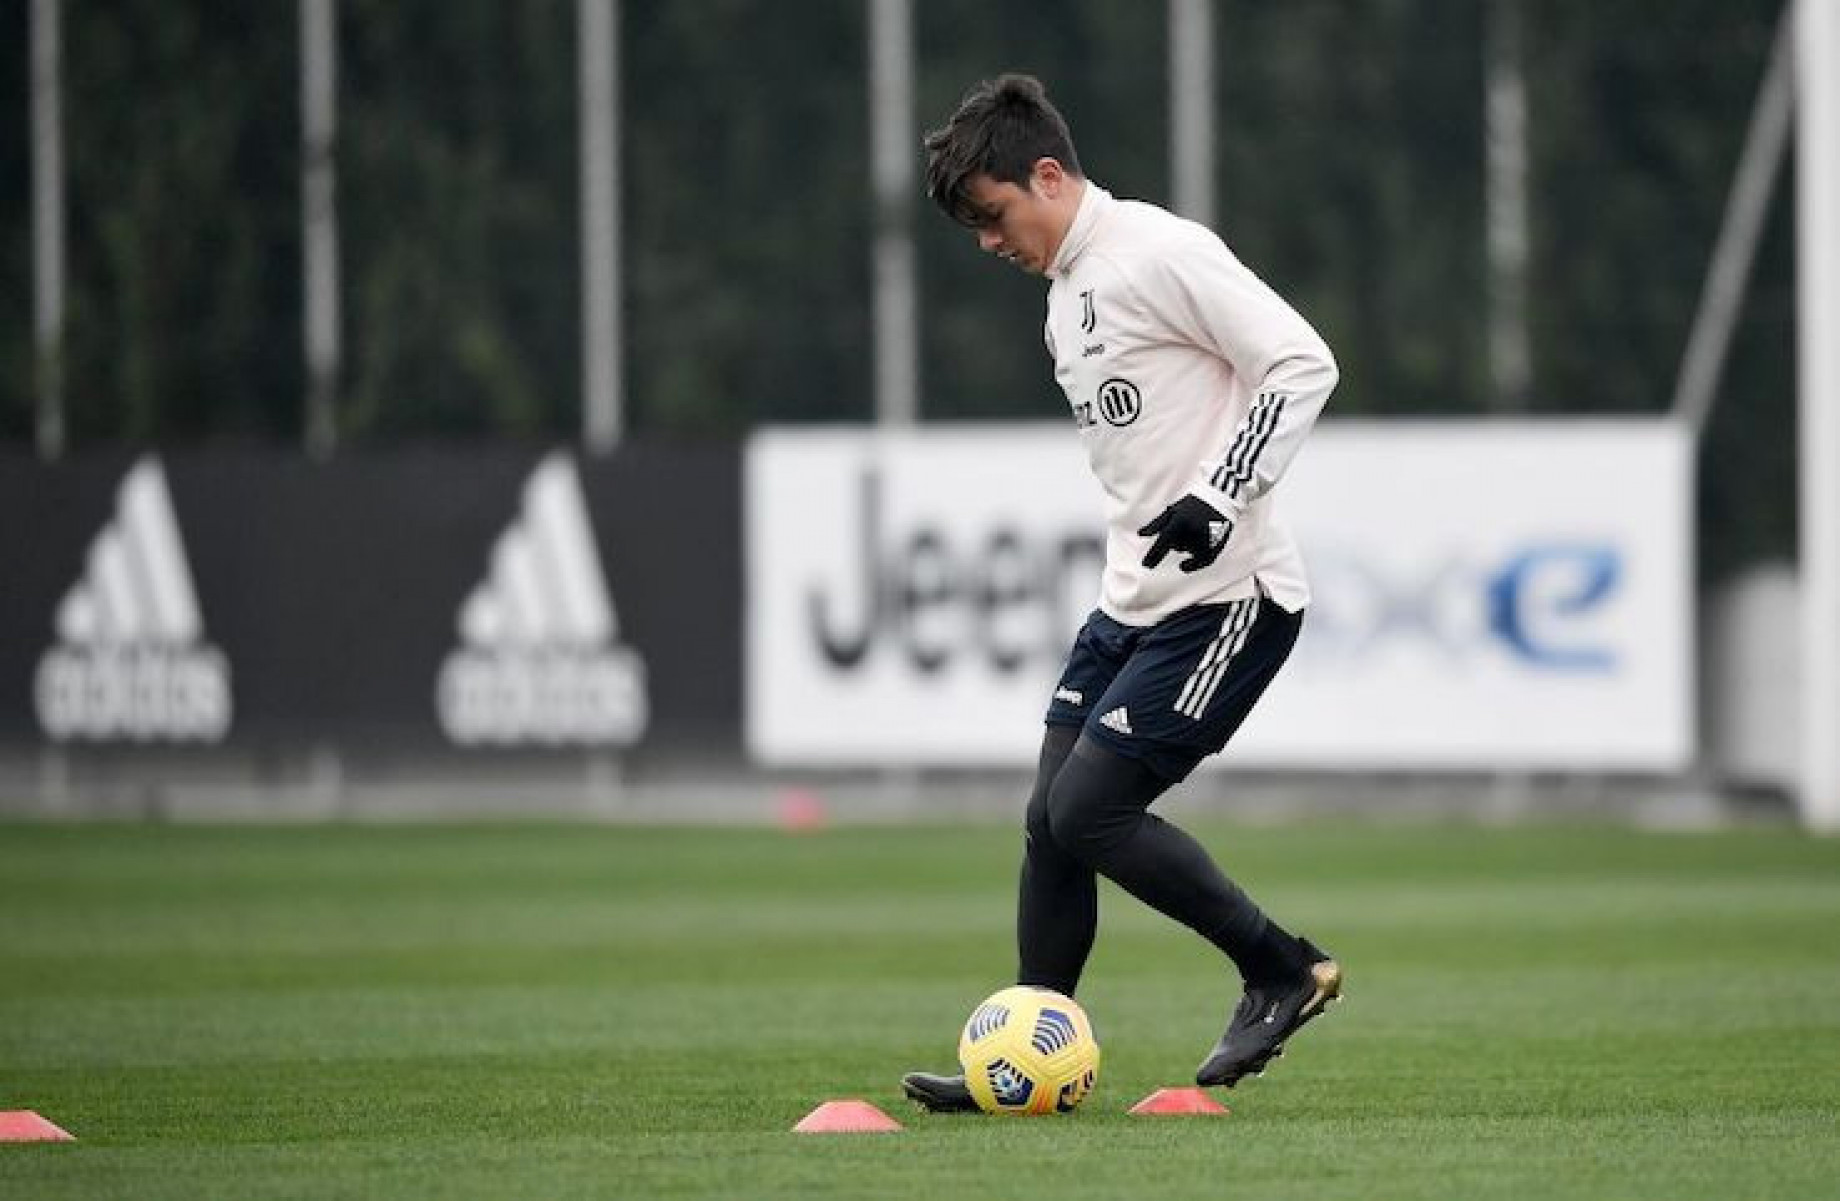 Dybala_allenamento_GETTY.jpg